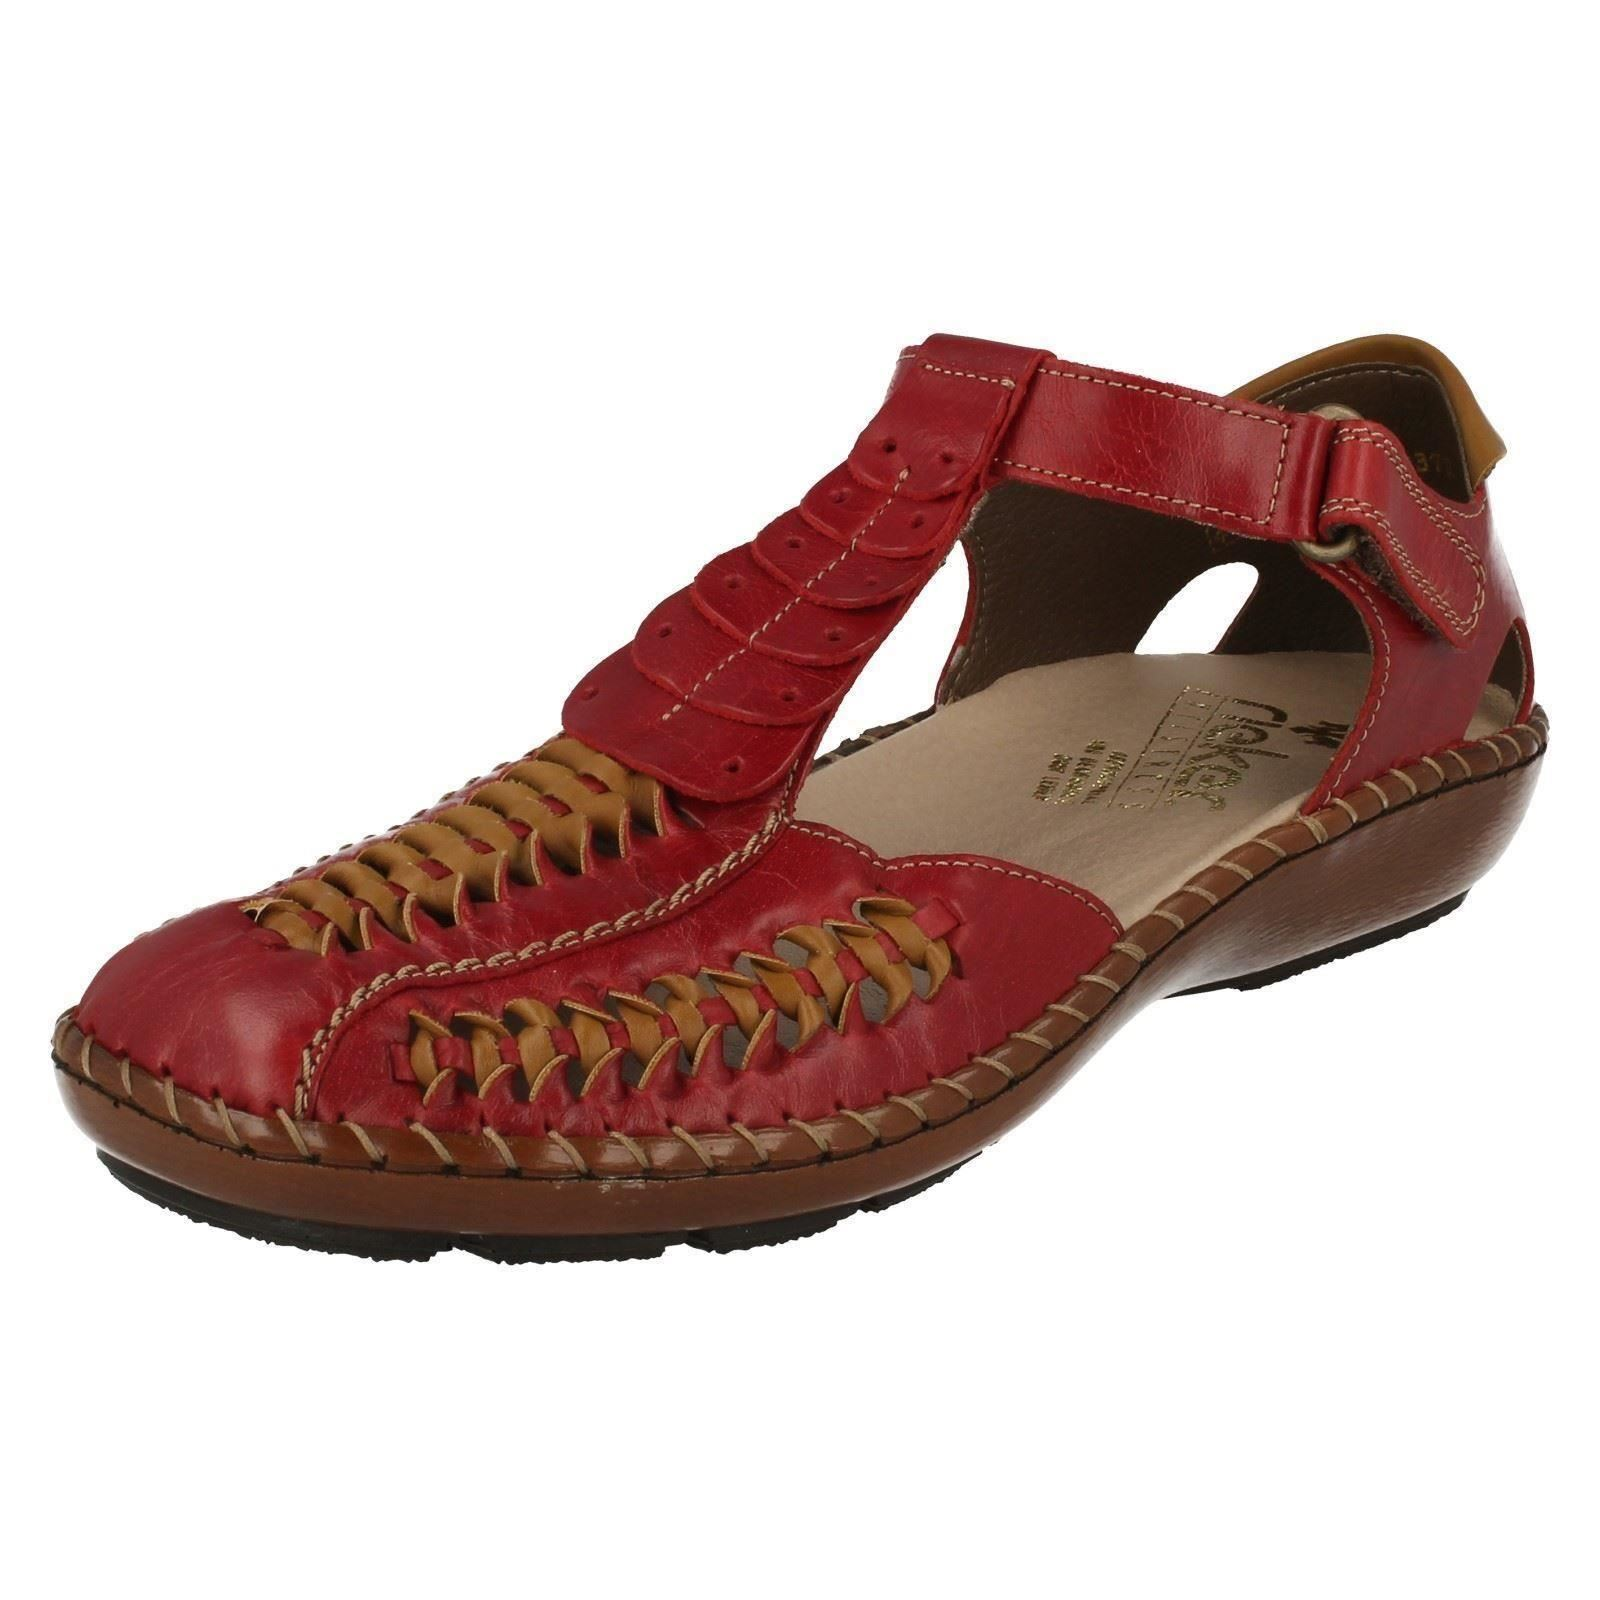 Último gran descuento Ladies Red Leather Riptape Closed Toe Rieker Sandals Shoes 44858